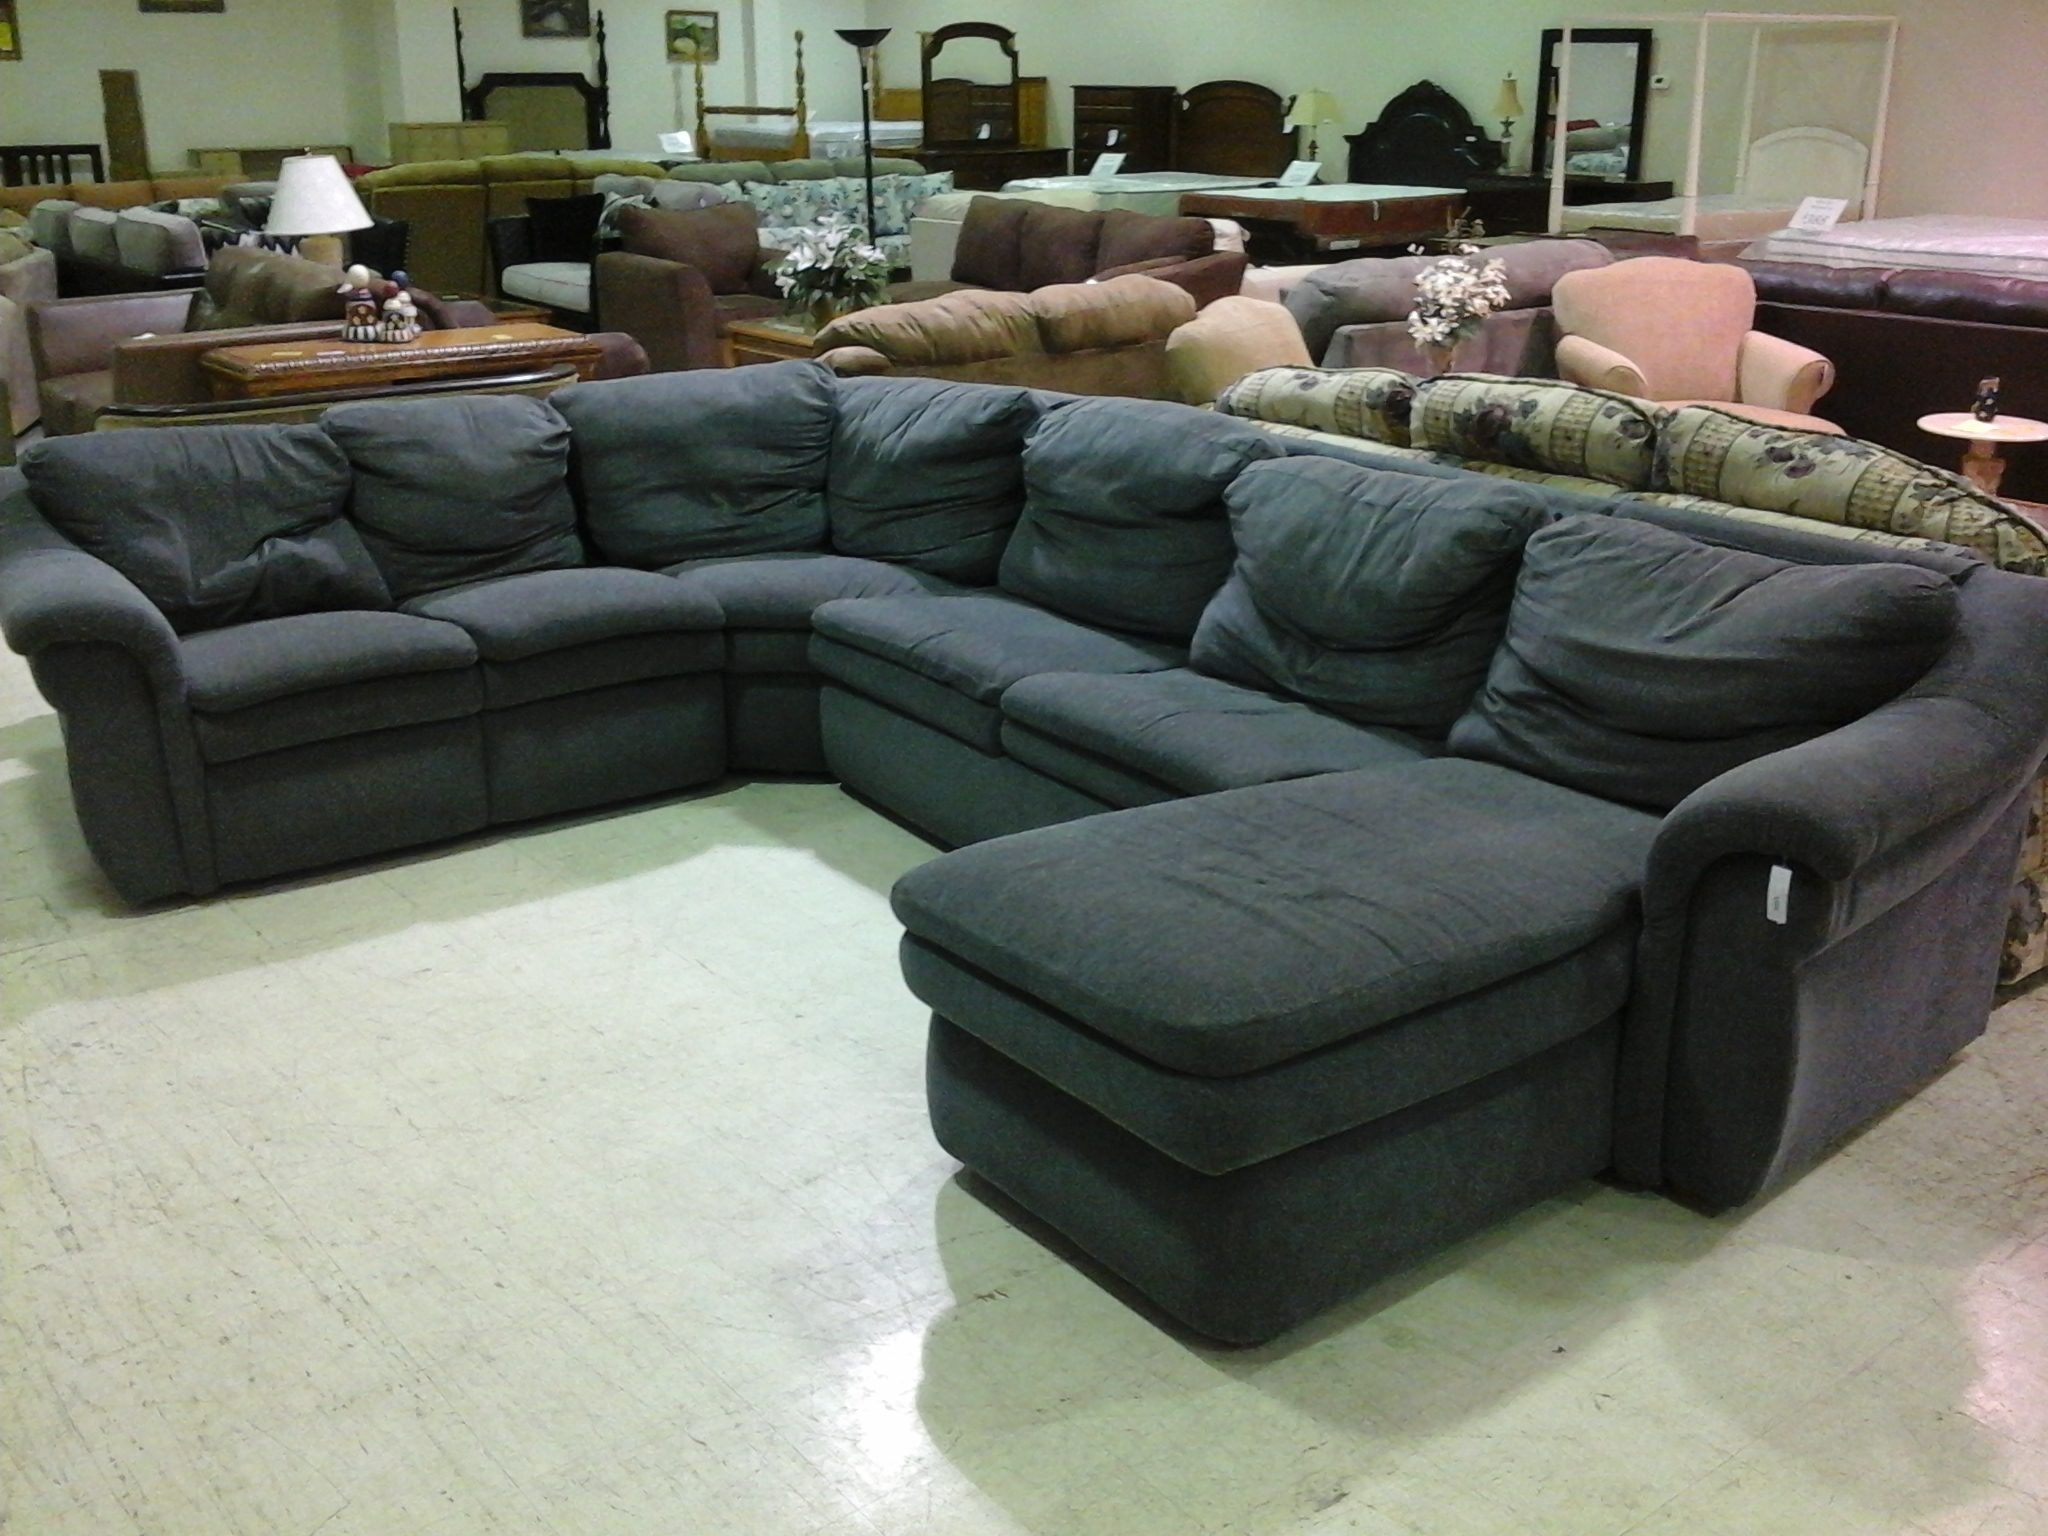 Queen Sofa Sleeper Sectional Microfiber | Functionalities Inside Sectional Sofas At Calgary (View 8 of 10)